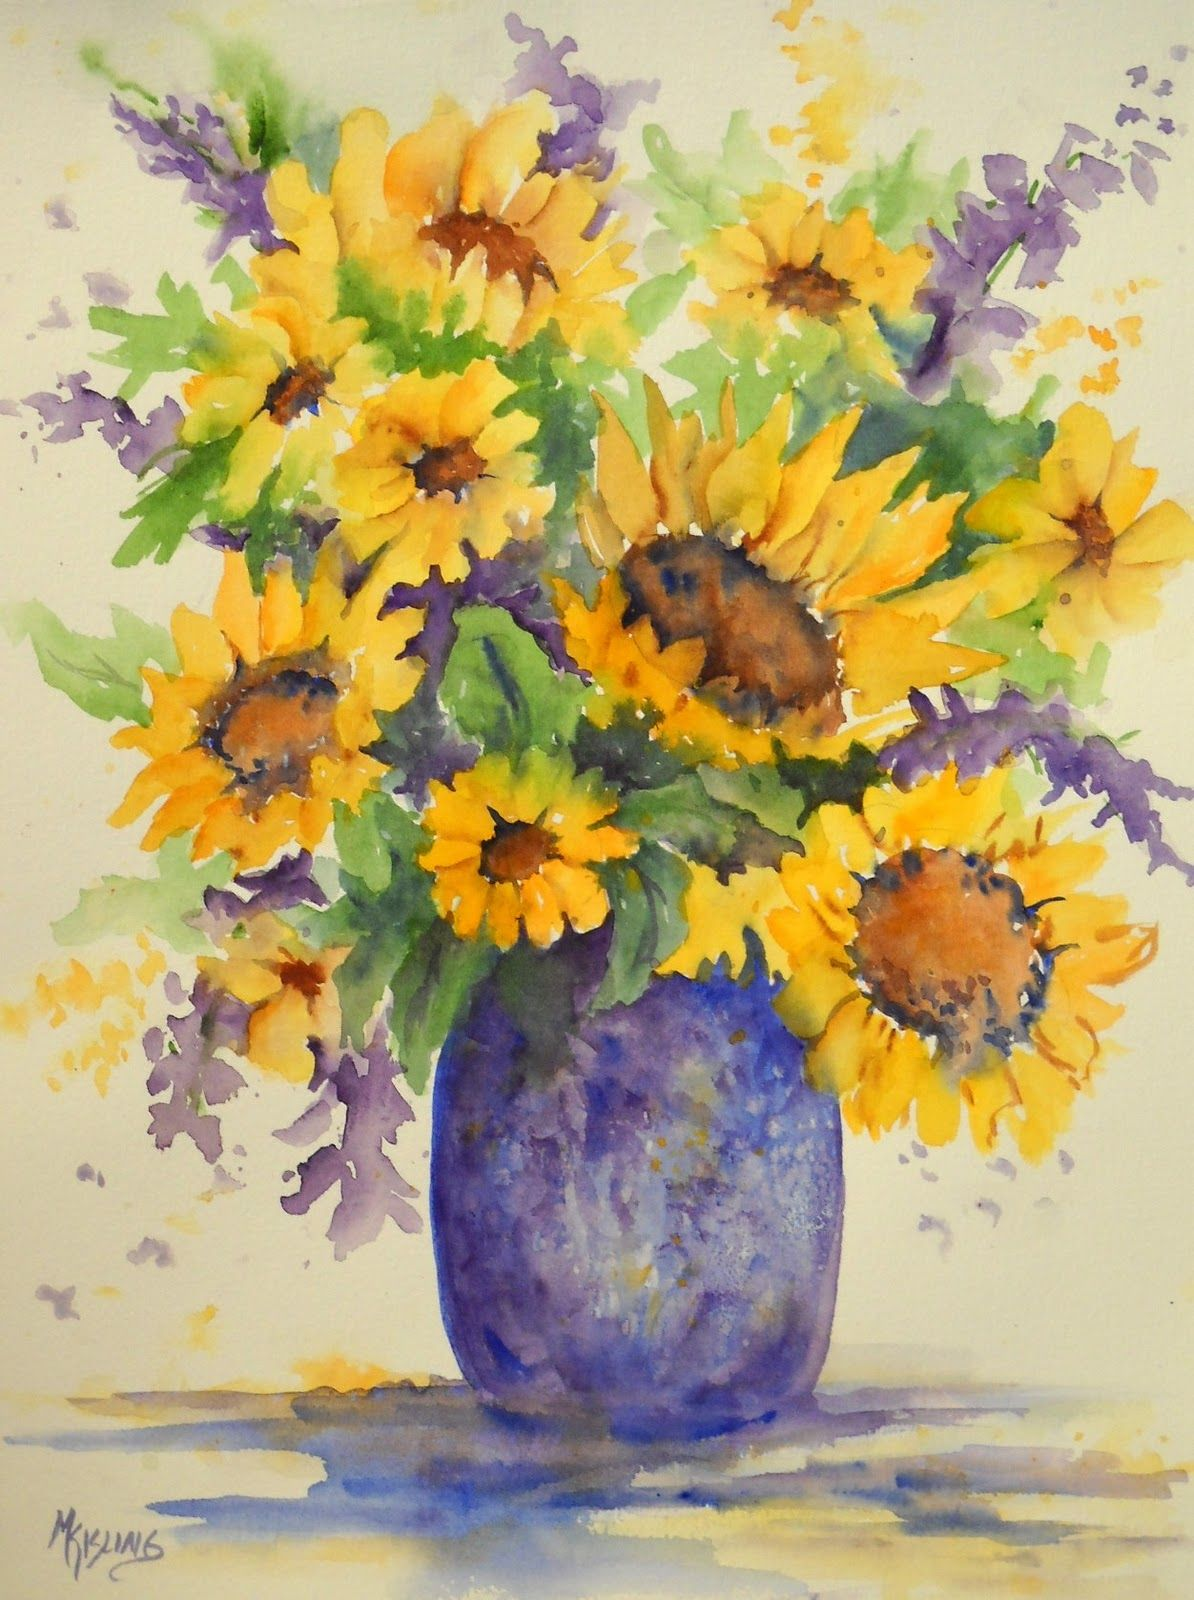 Watercolor Flowers And Paint Brushes: Watercolor Paintings Of Flowers